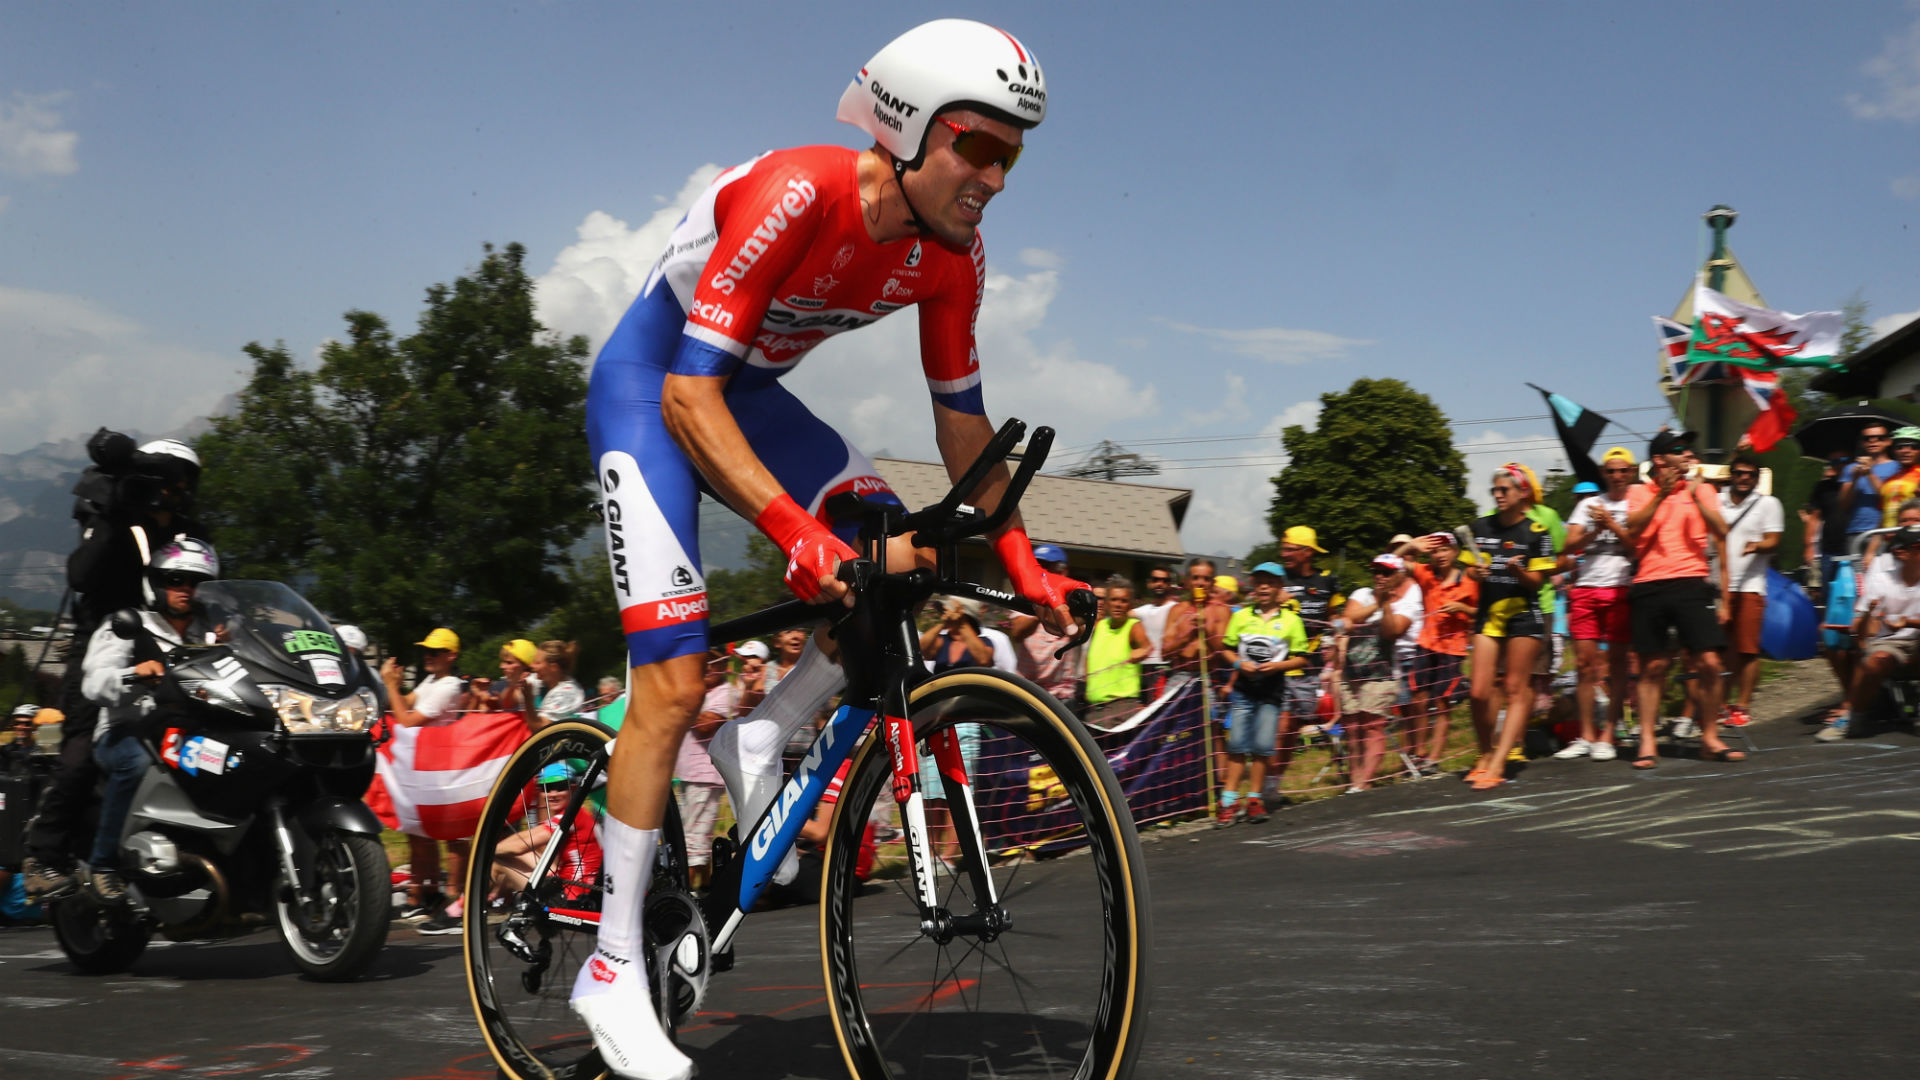 Dumoulin out of Tour de France as Froome leaves hospital